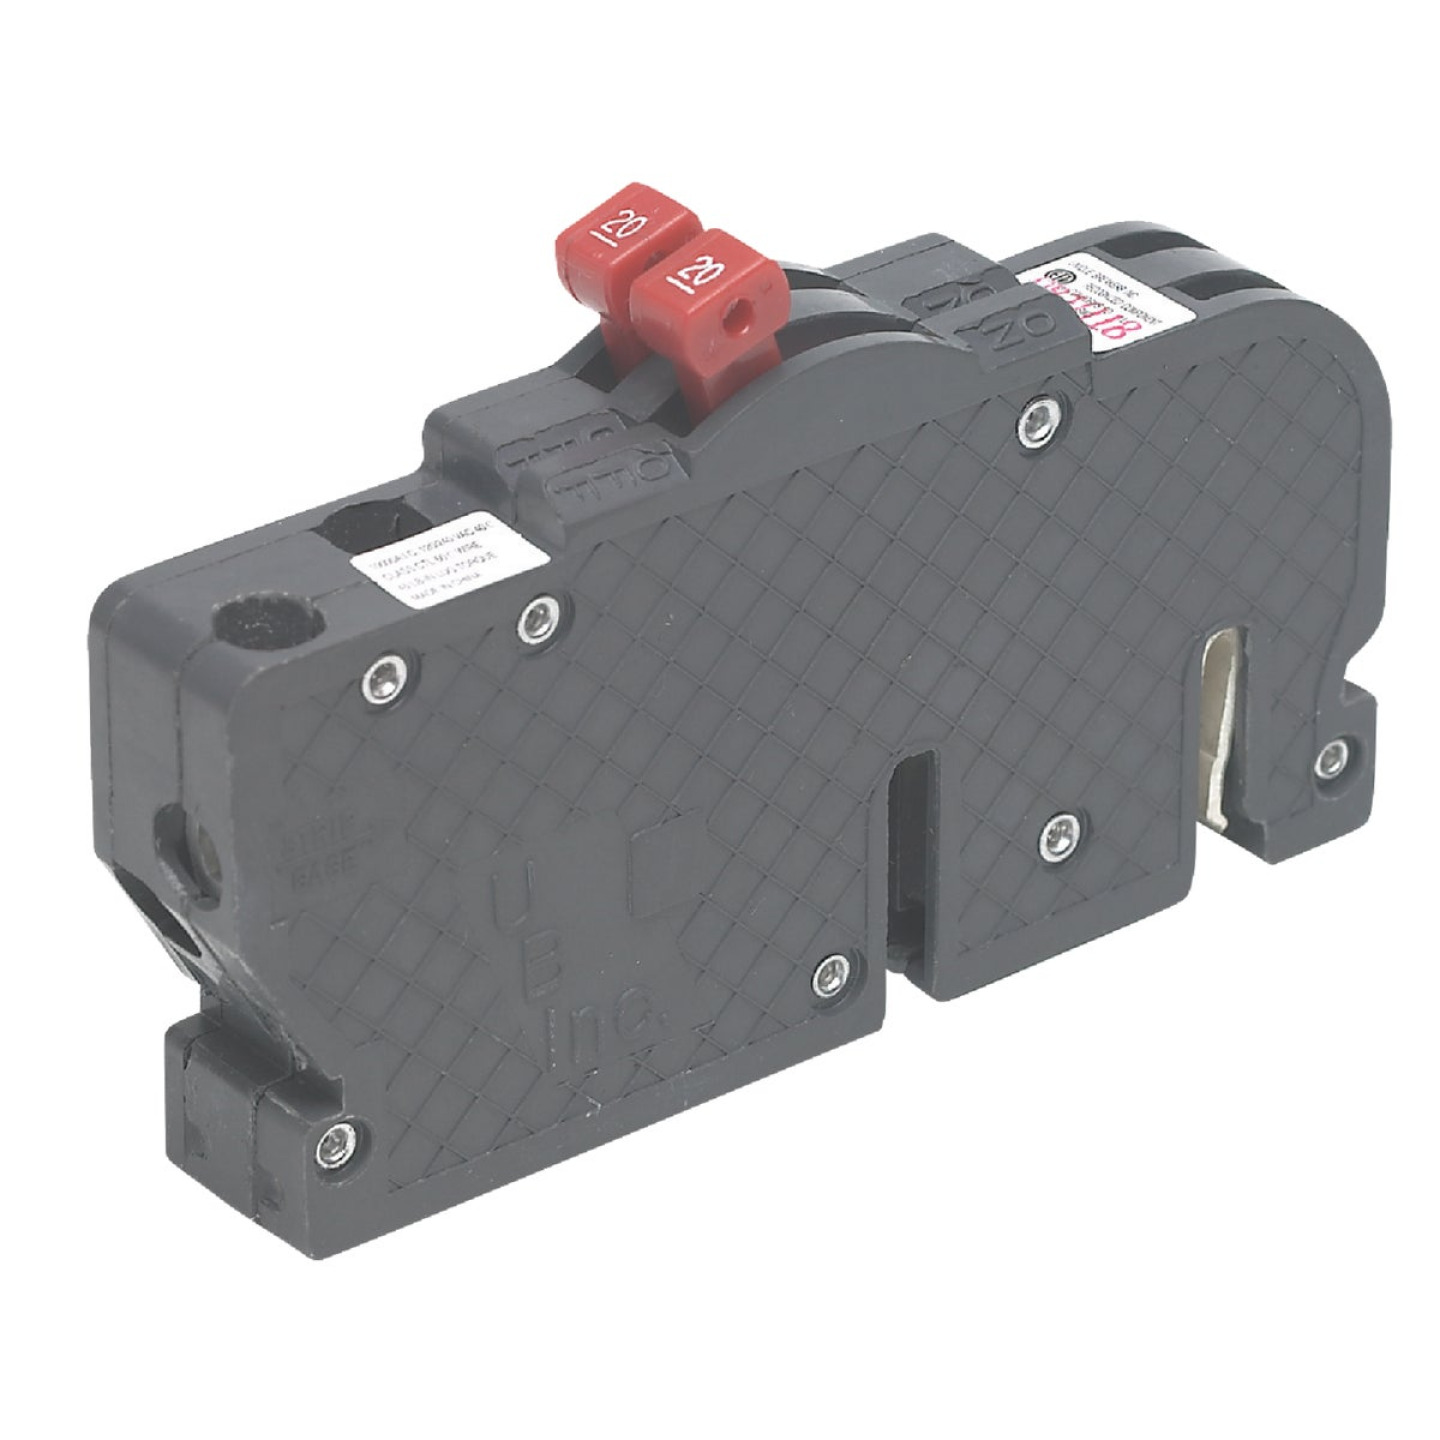 Connecticut Electric 15A/15A Twin Single-Pole Standard Trip Packaged Replacement Circuit Breaker For Zinsco Image 1